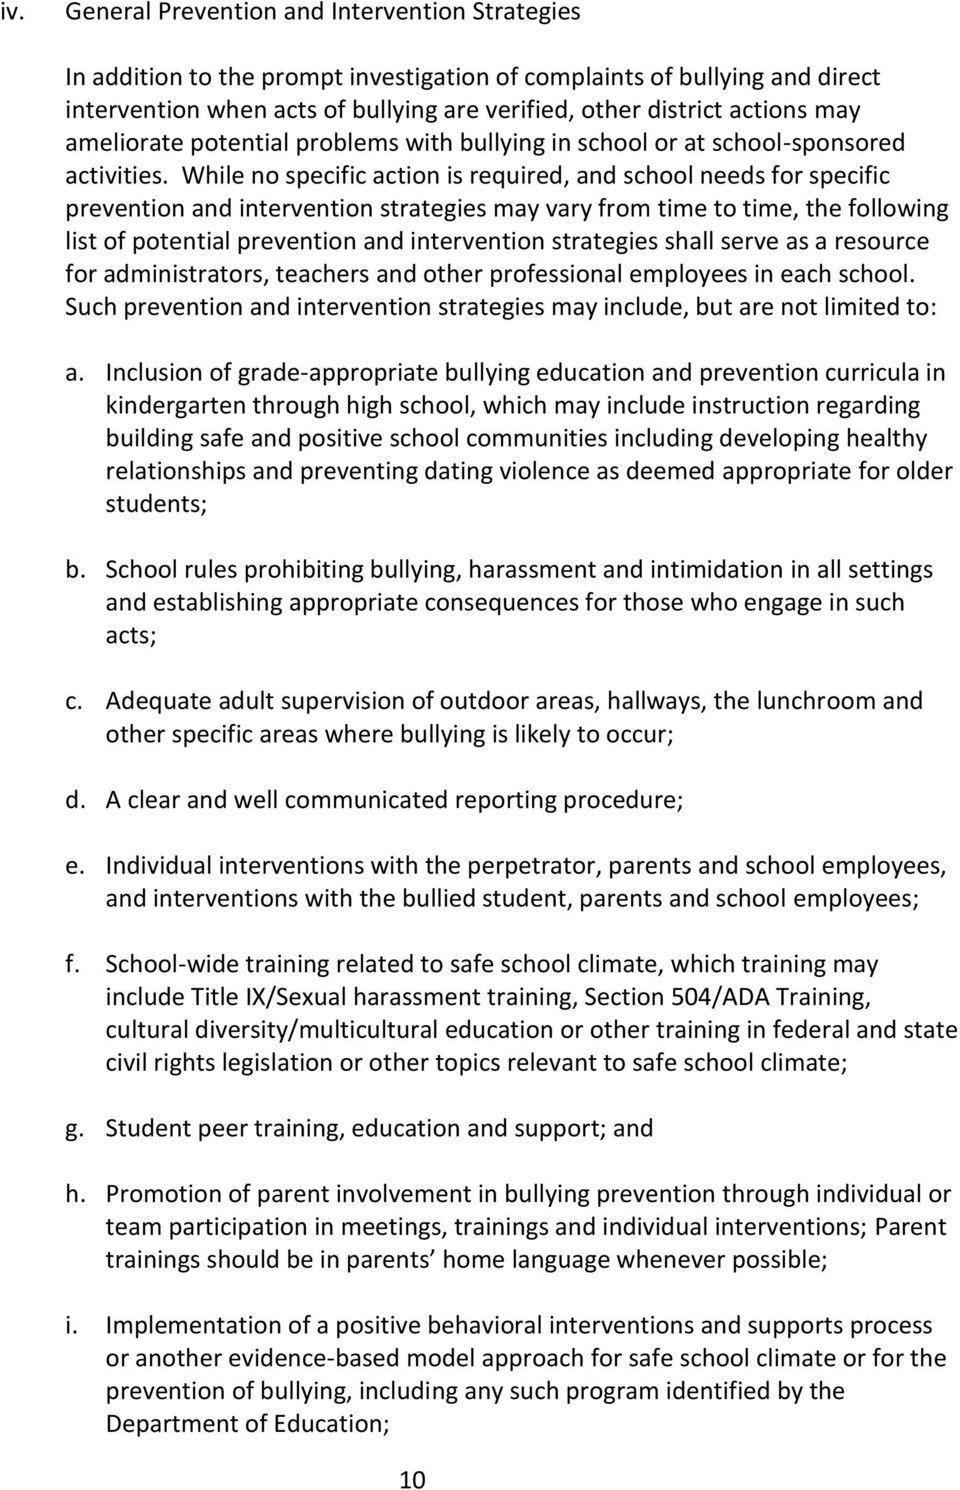 While no specific action is required, and school needs for specific prevention and intervention strategies may vary from time to time, the following list of potential prevention and intervention